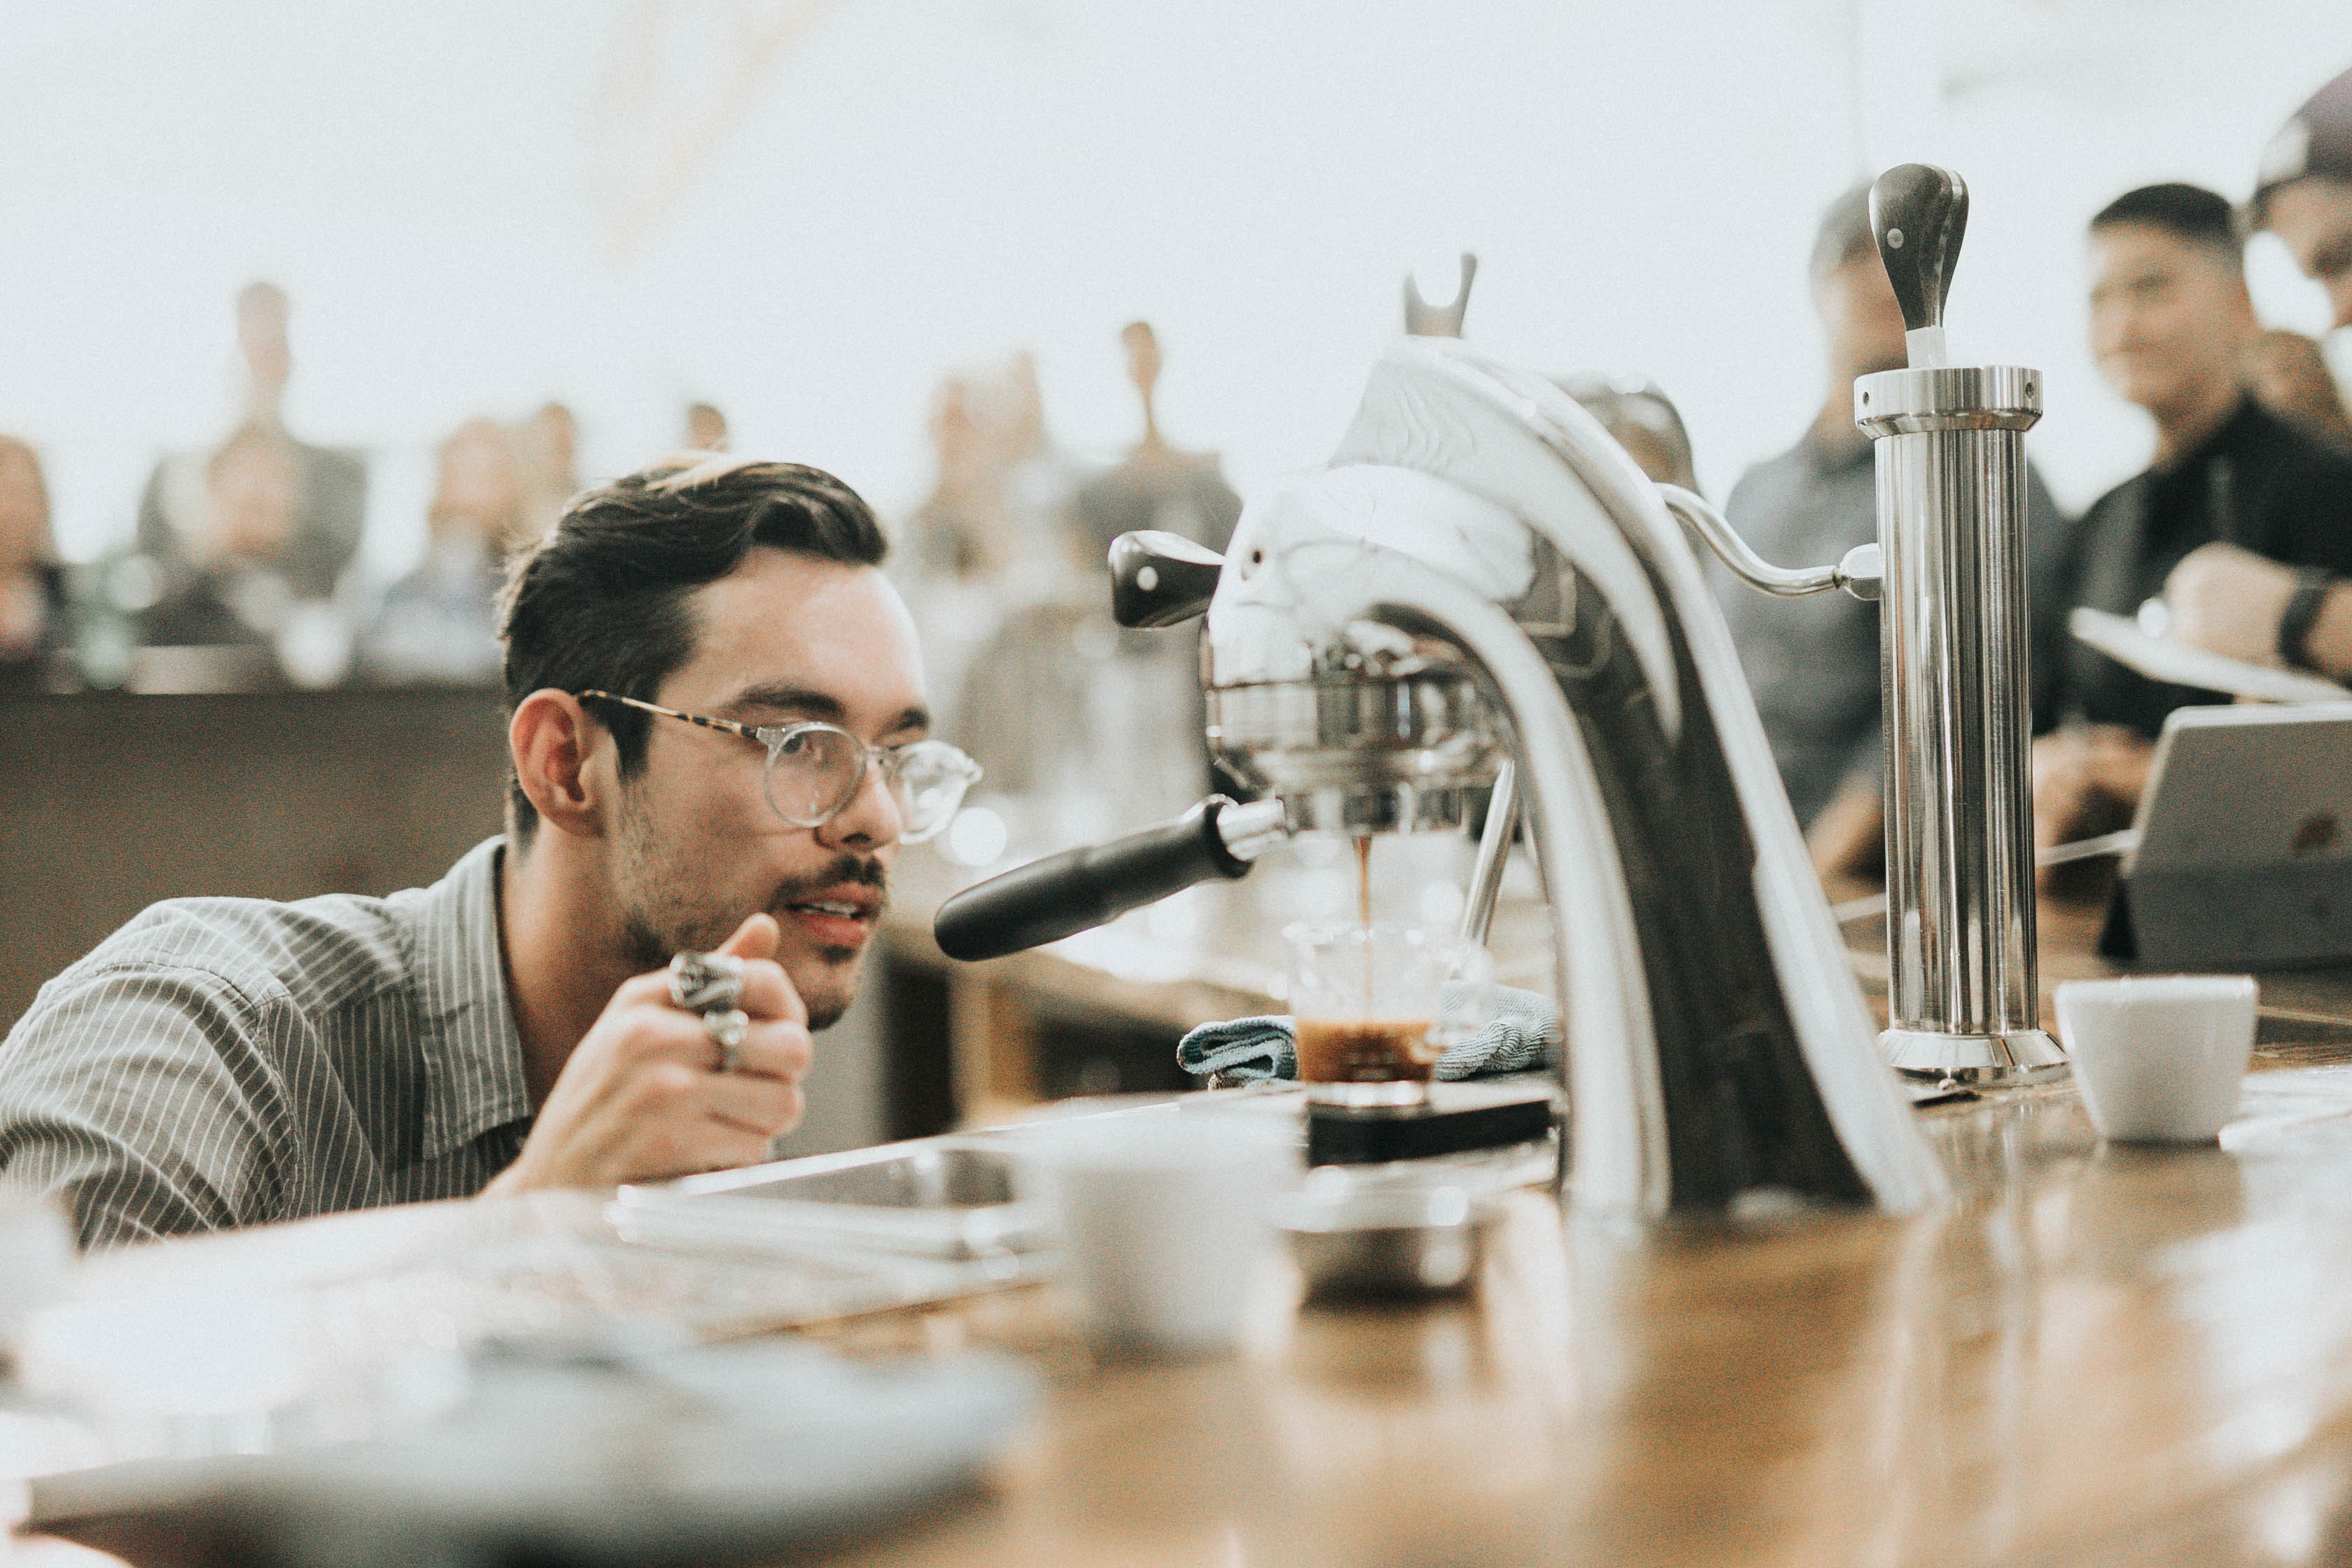 Barista looking at an espresso machine while making coffee